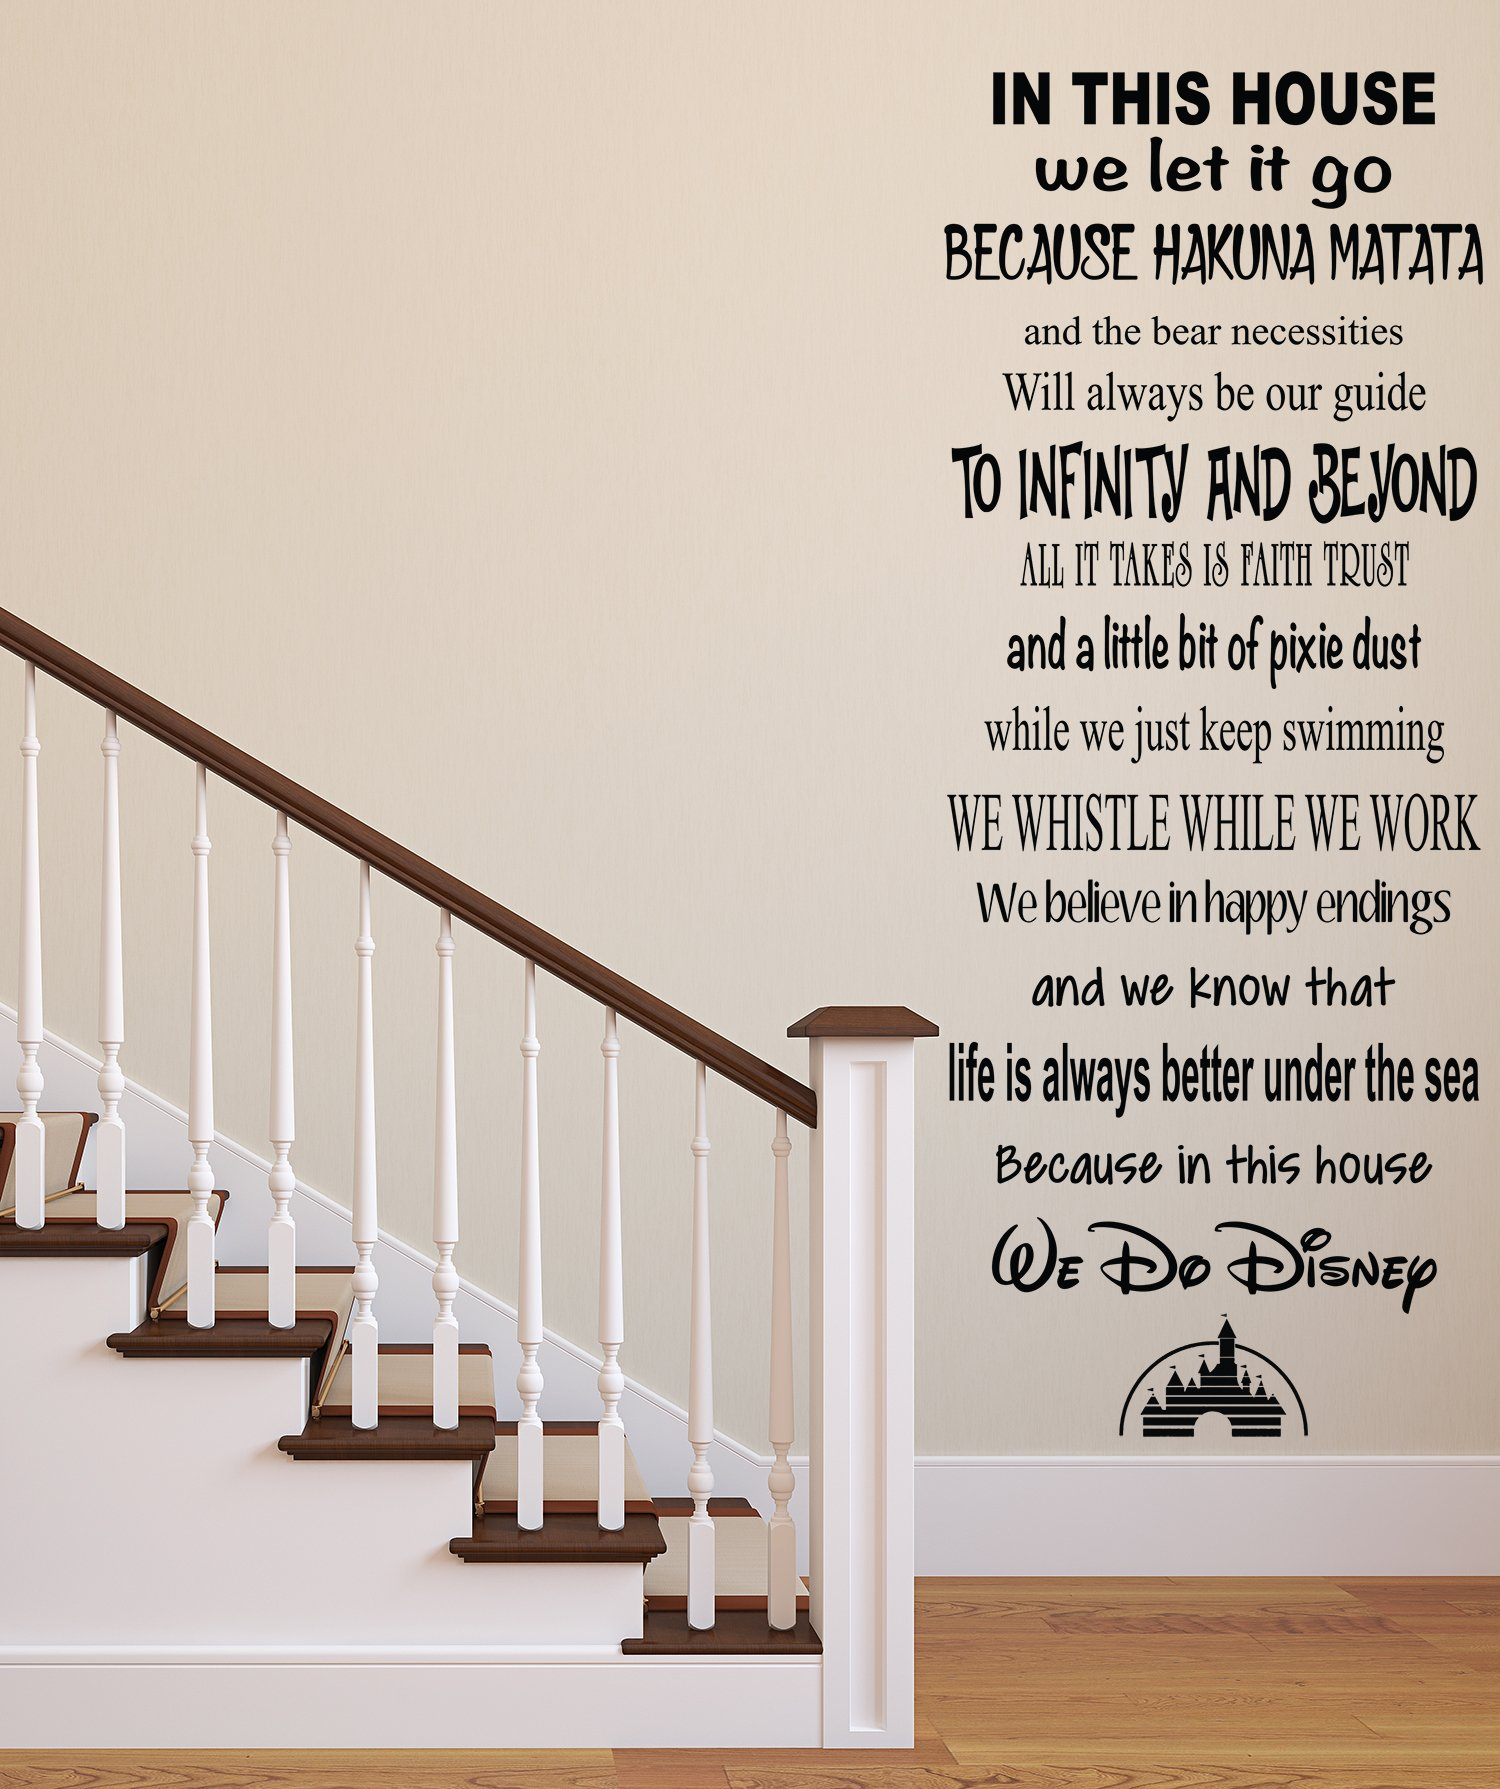 In This House We Do Disney Famous Movie Quote Wall Decal Living Room Decor Art Vinyl by Pinkie Penguin (Image #3)